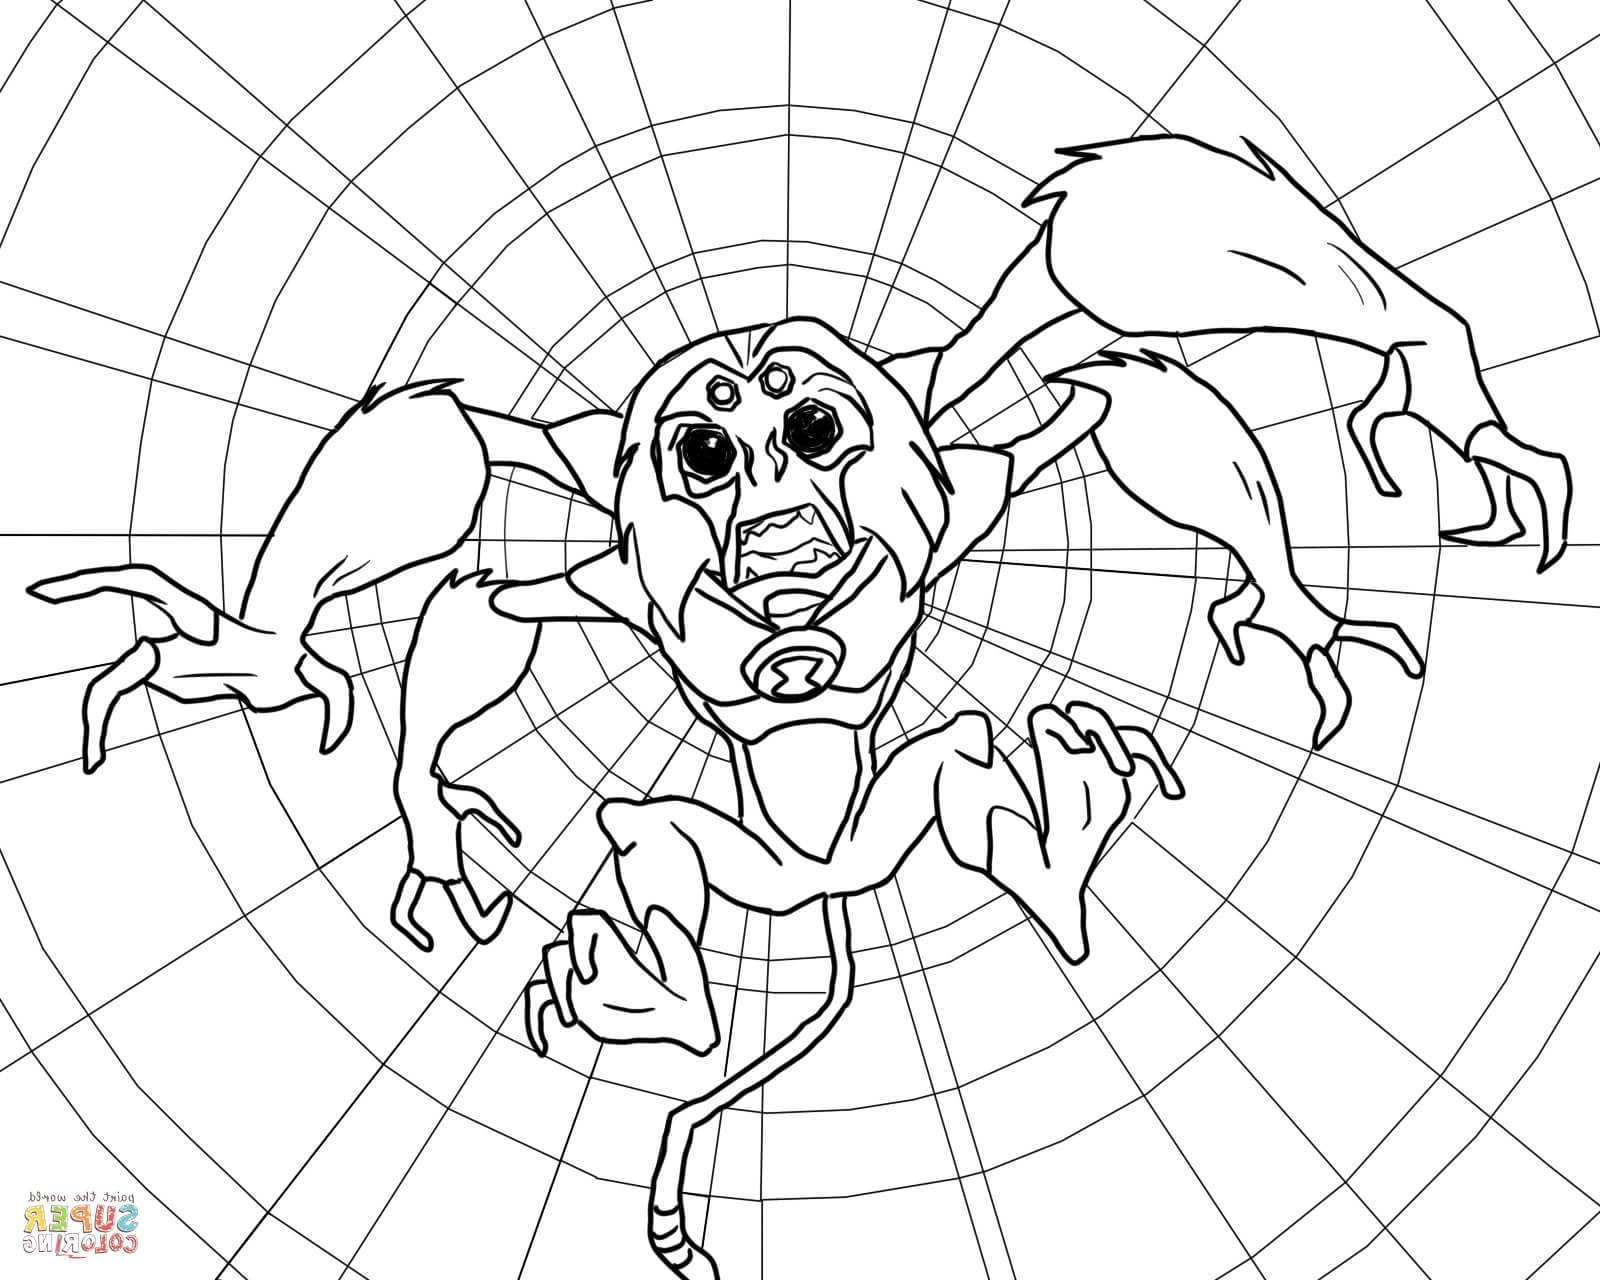 Ben 10 drawing step by step at free for for Spider monkey coloring page